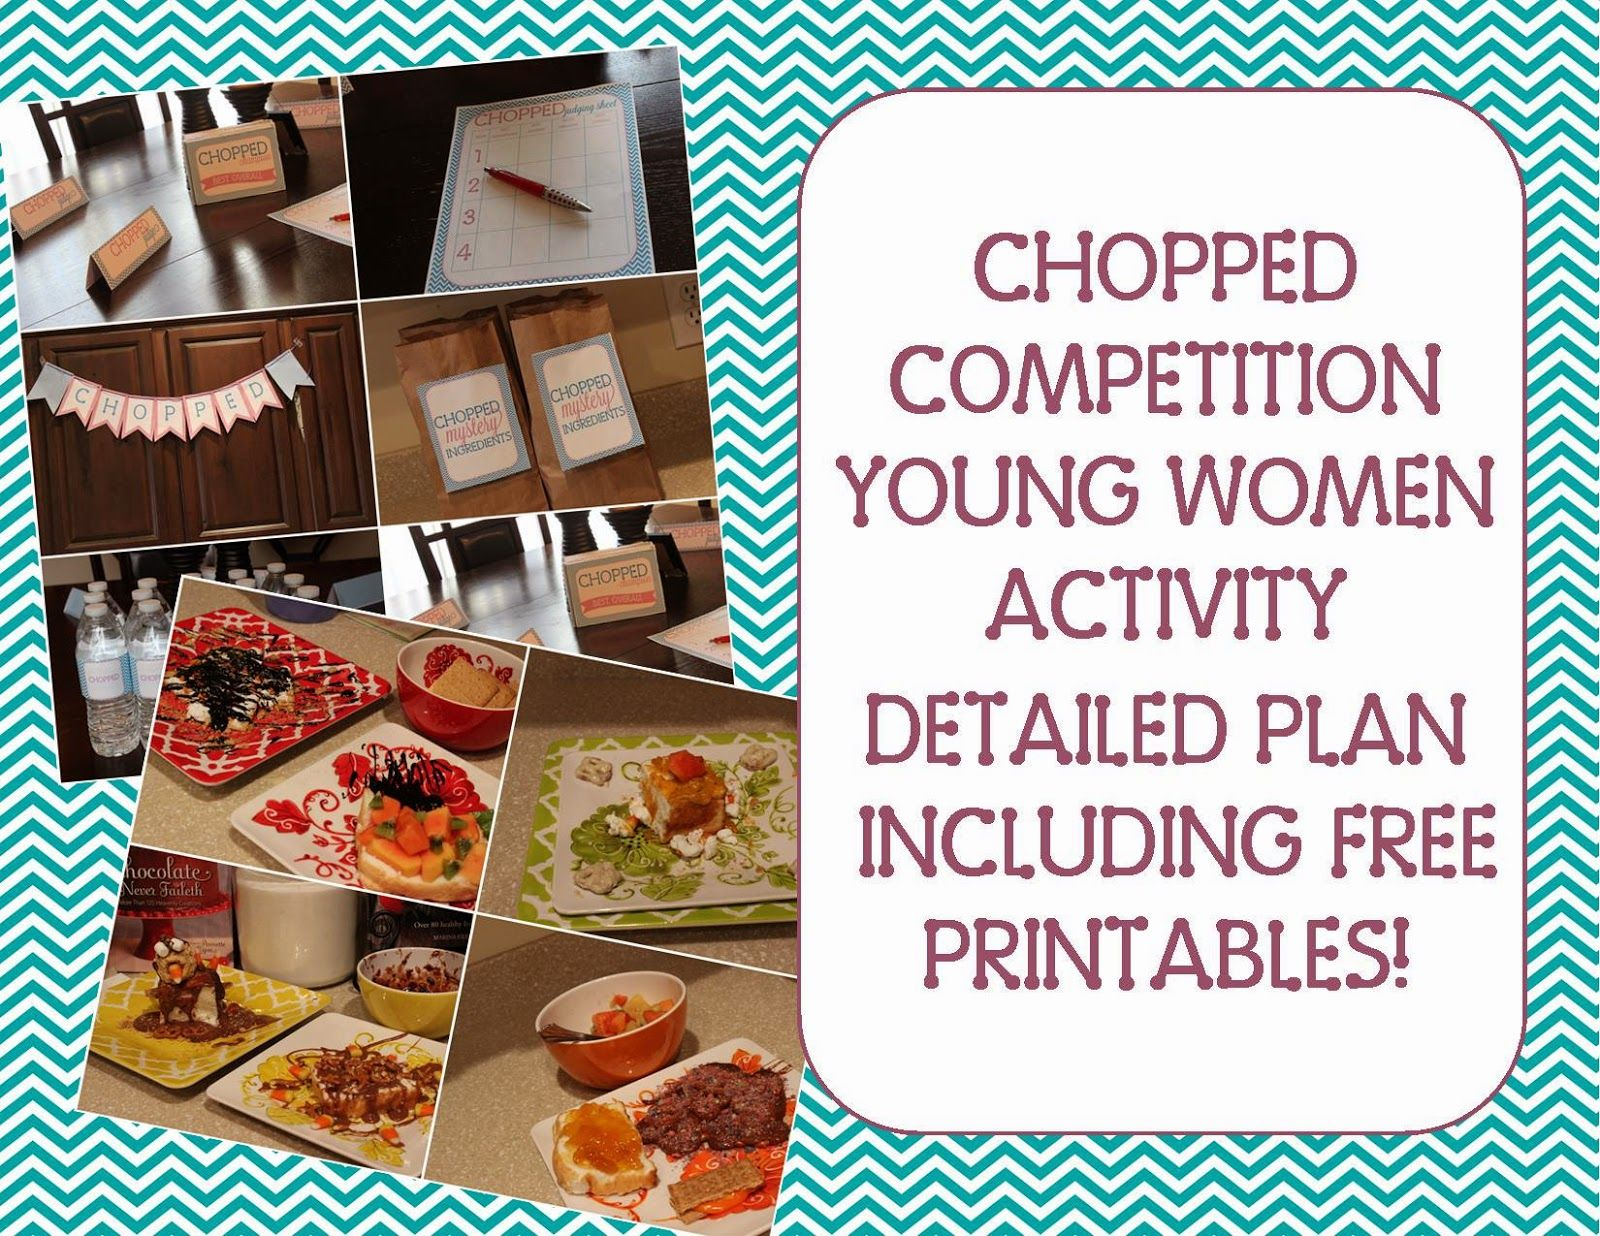 Chopped Yw Activity Detailed Plan Includes Free Printables